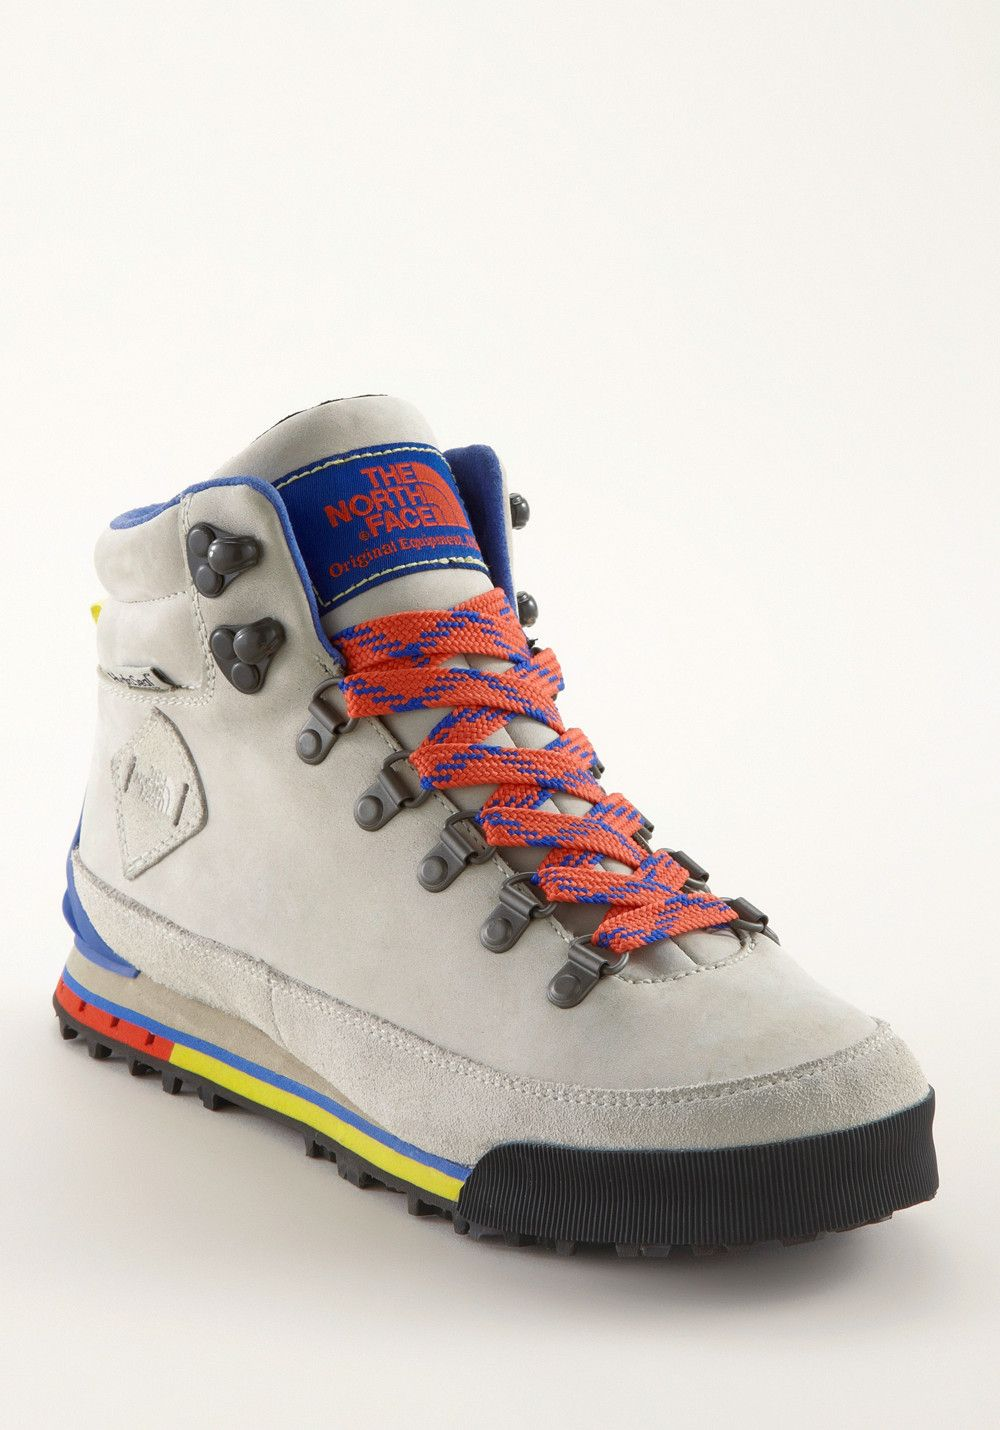 372fd8c92a Love these winter boots    THE NORTH FACE Back To Berkeley Nubuck ...